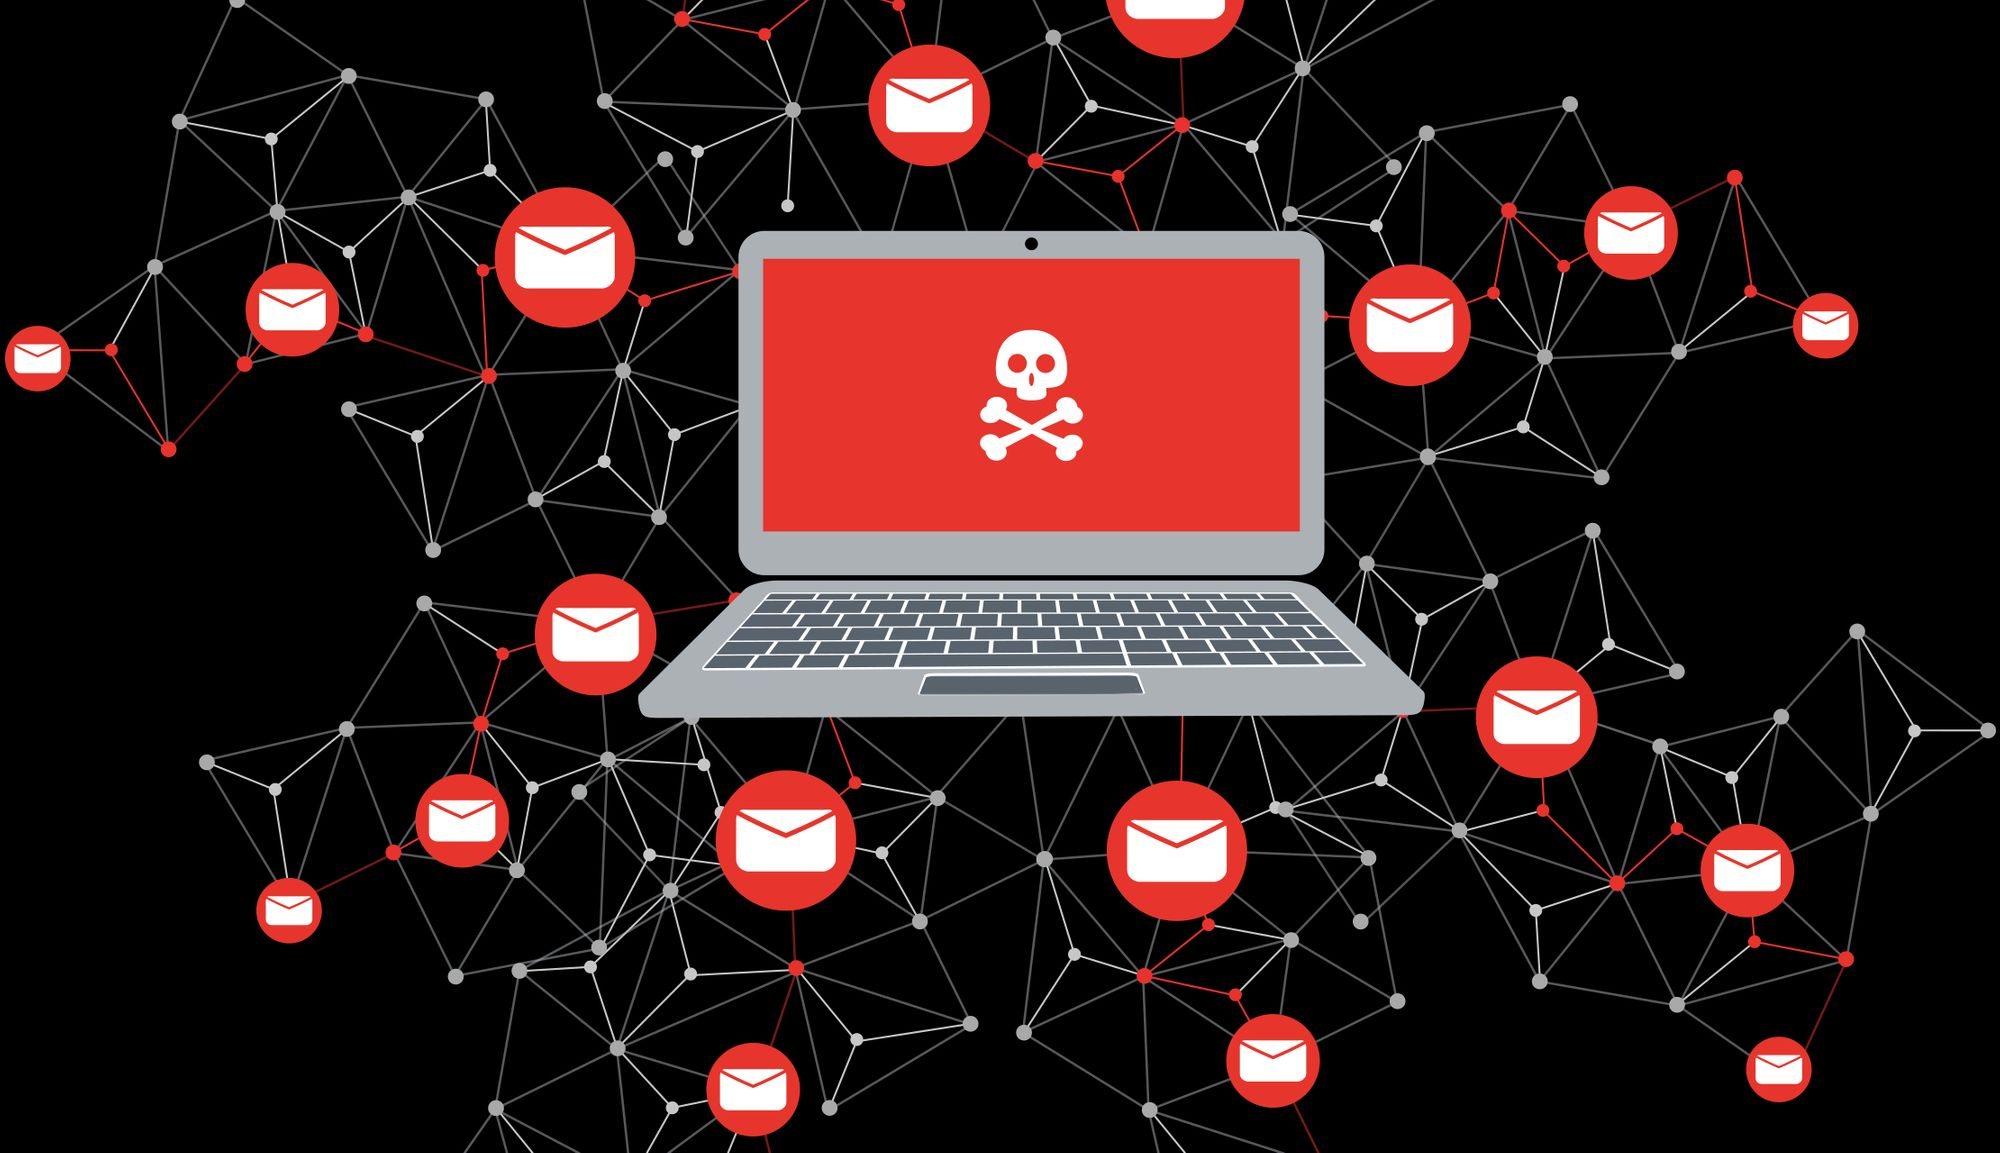 Social Engineering 2.0 - Evasive Spear Phishing and Vendor Email Compromise